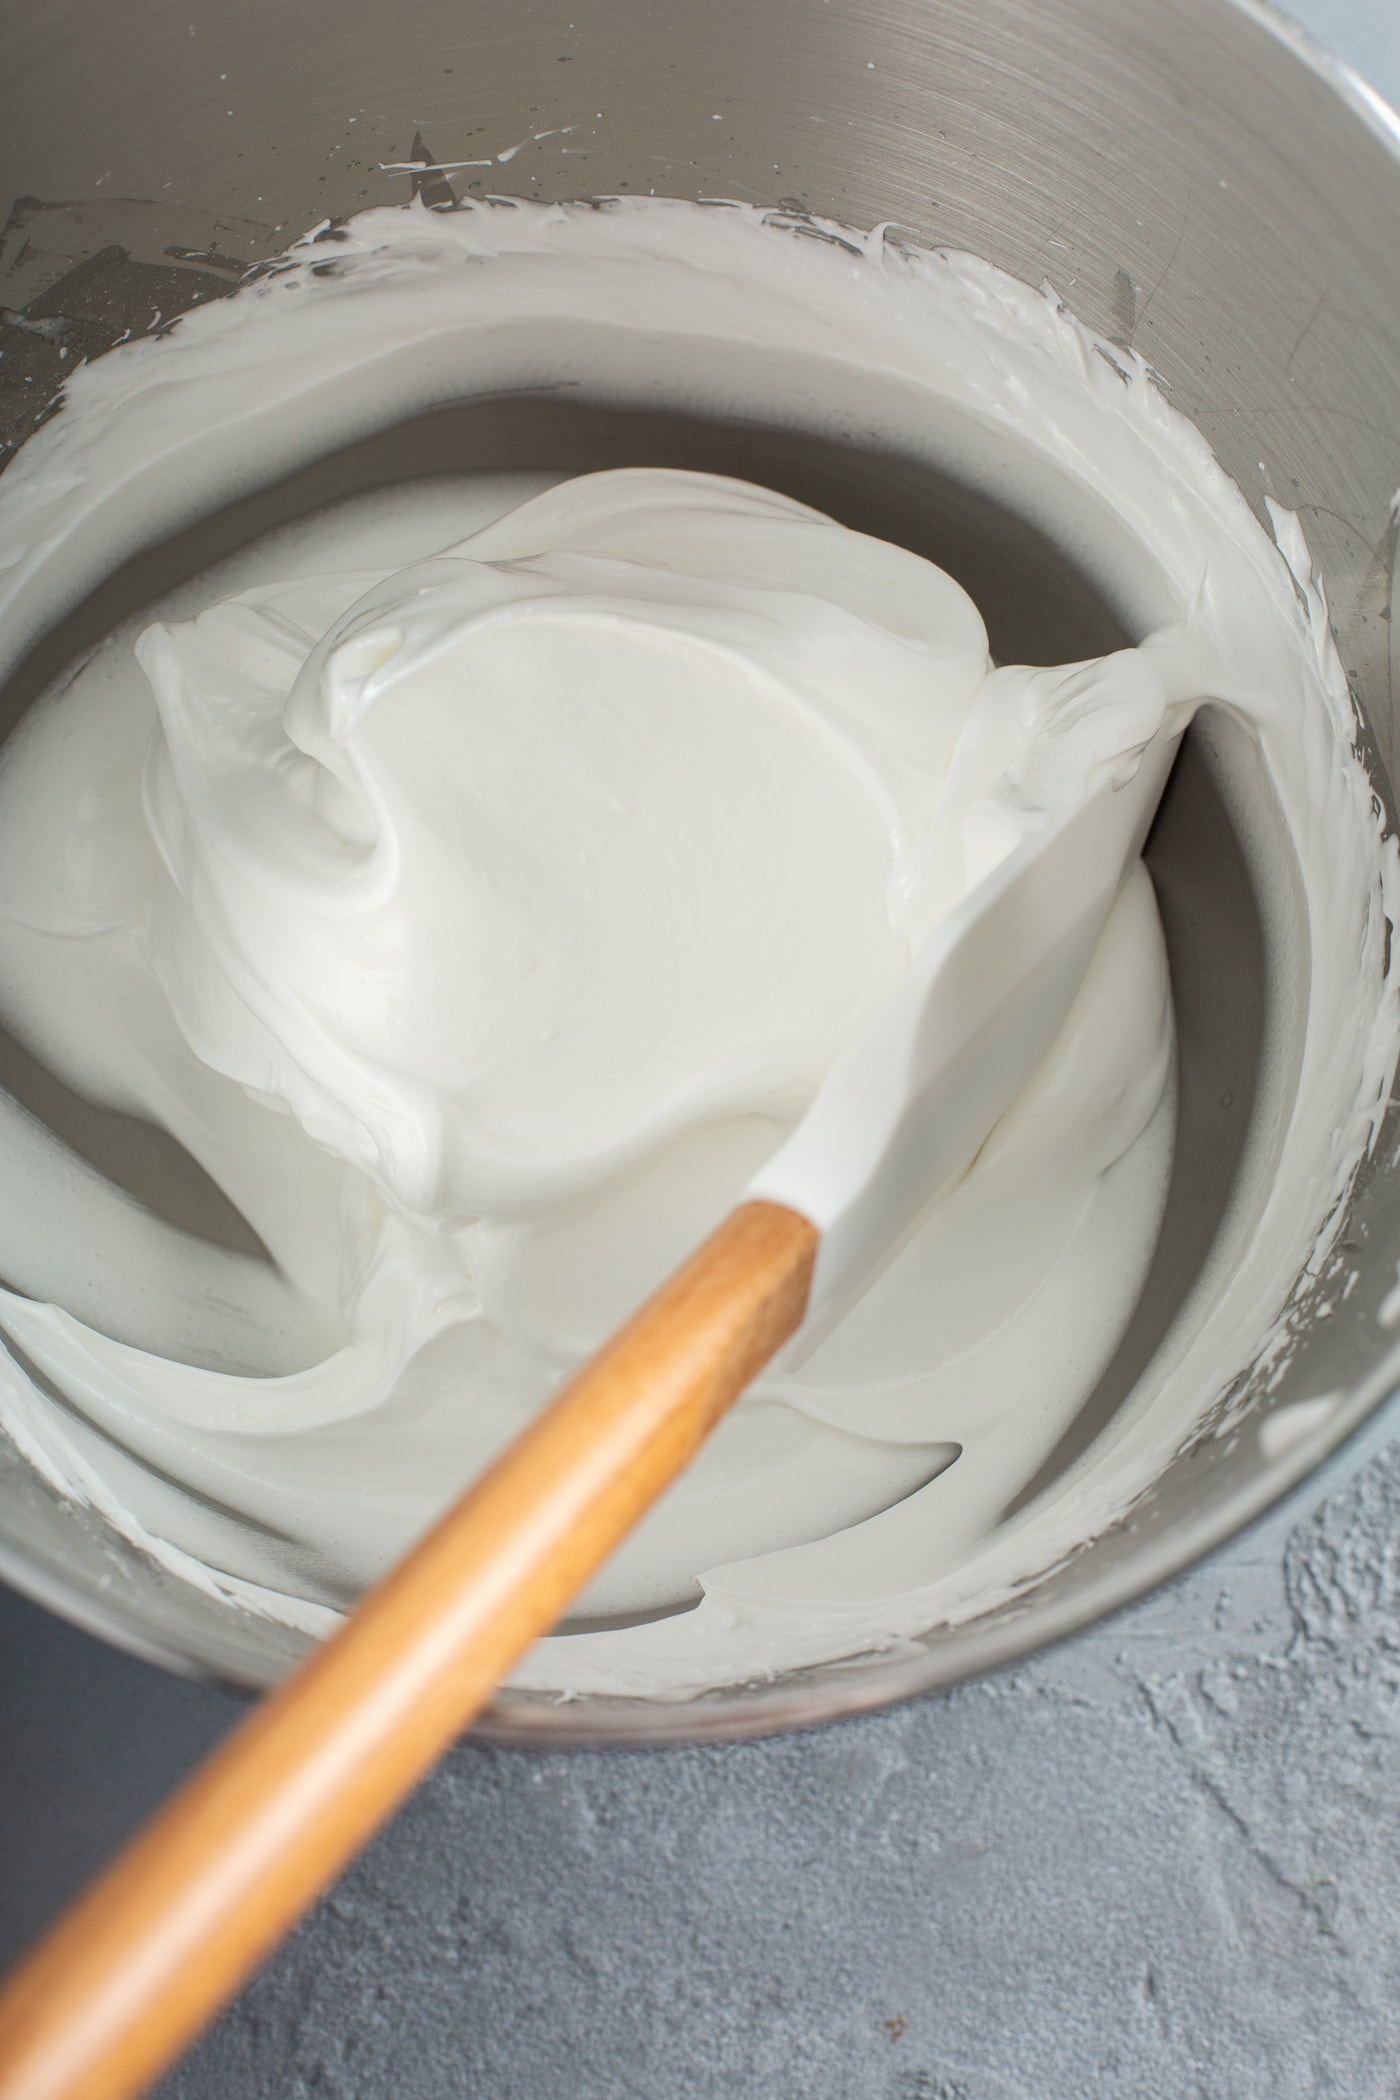 A mixing bowl with stiff meringue and a spatula inside.